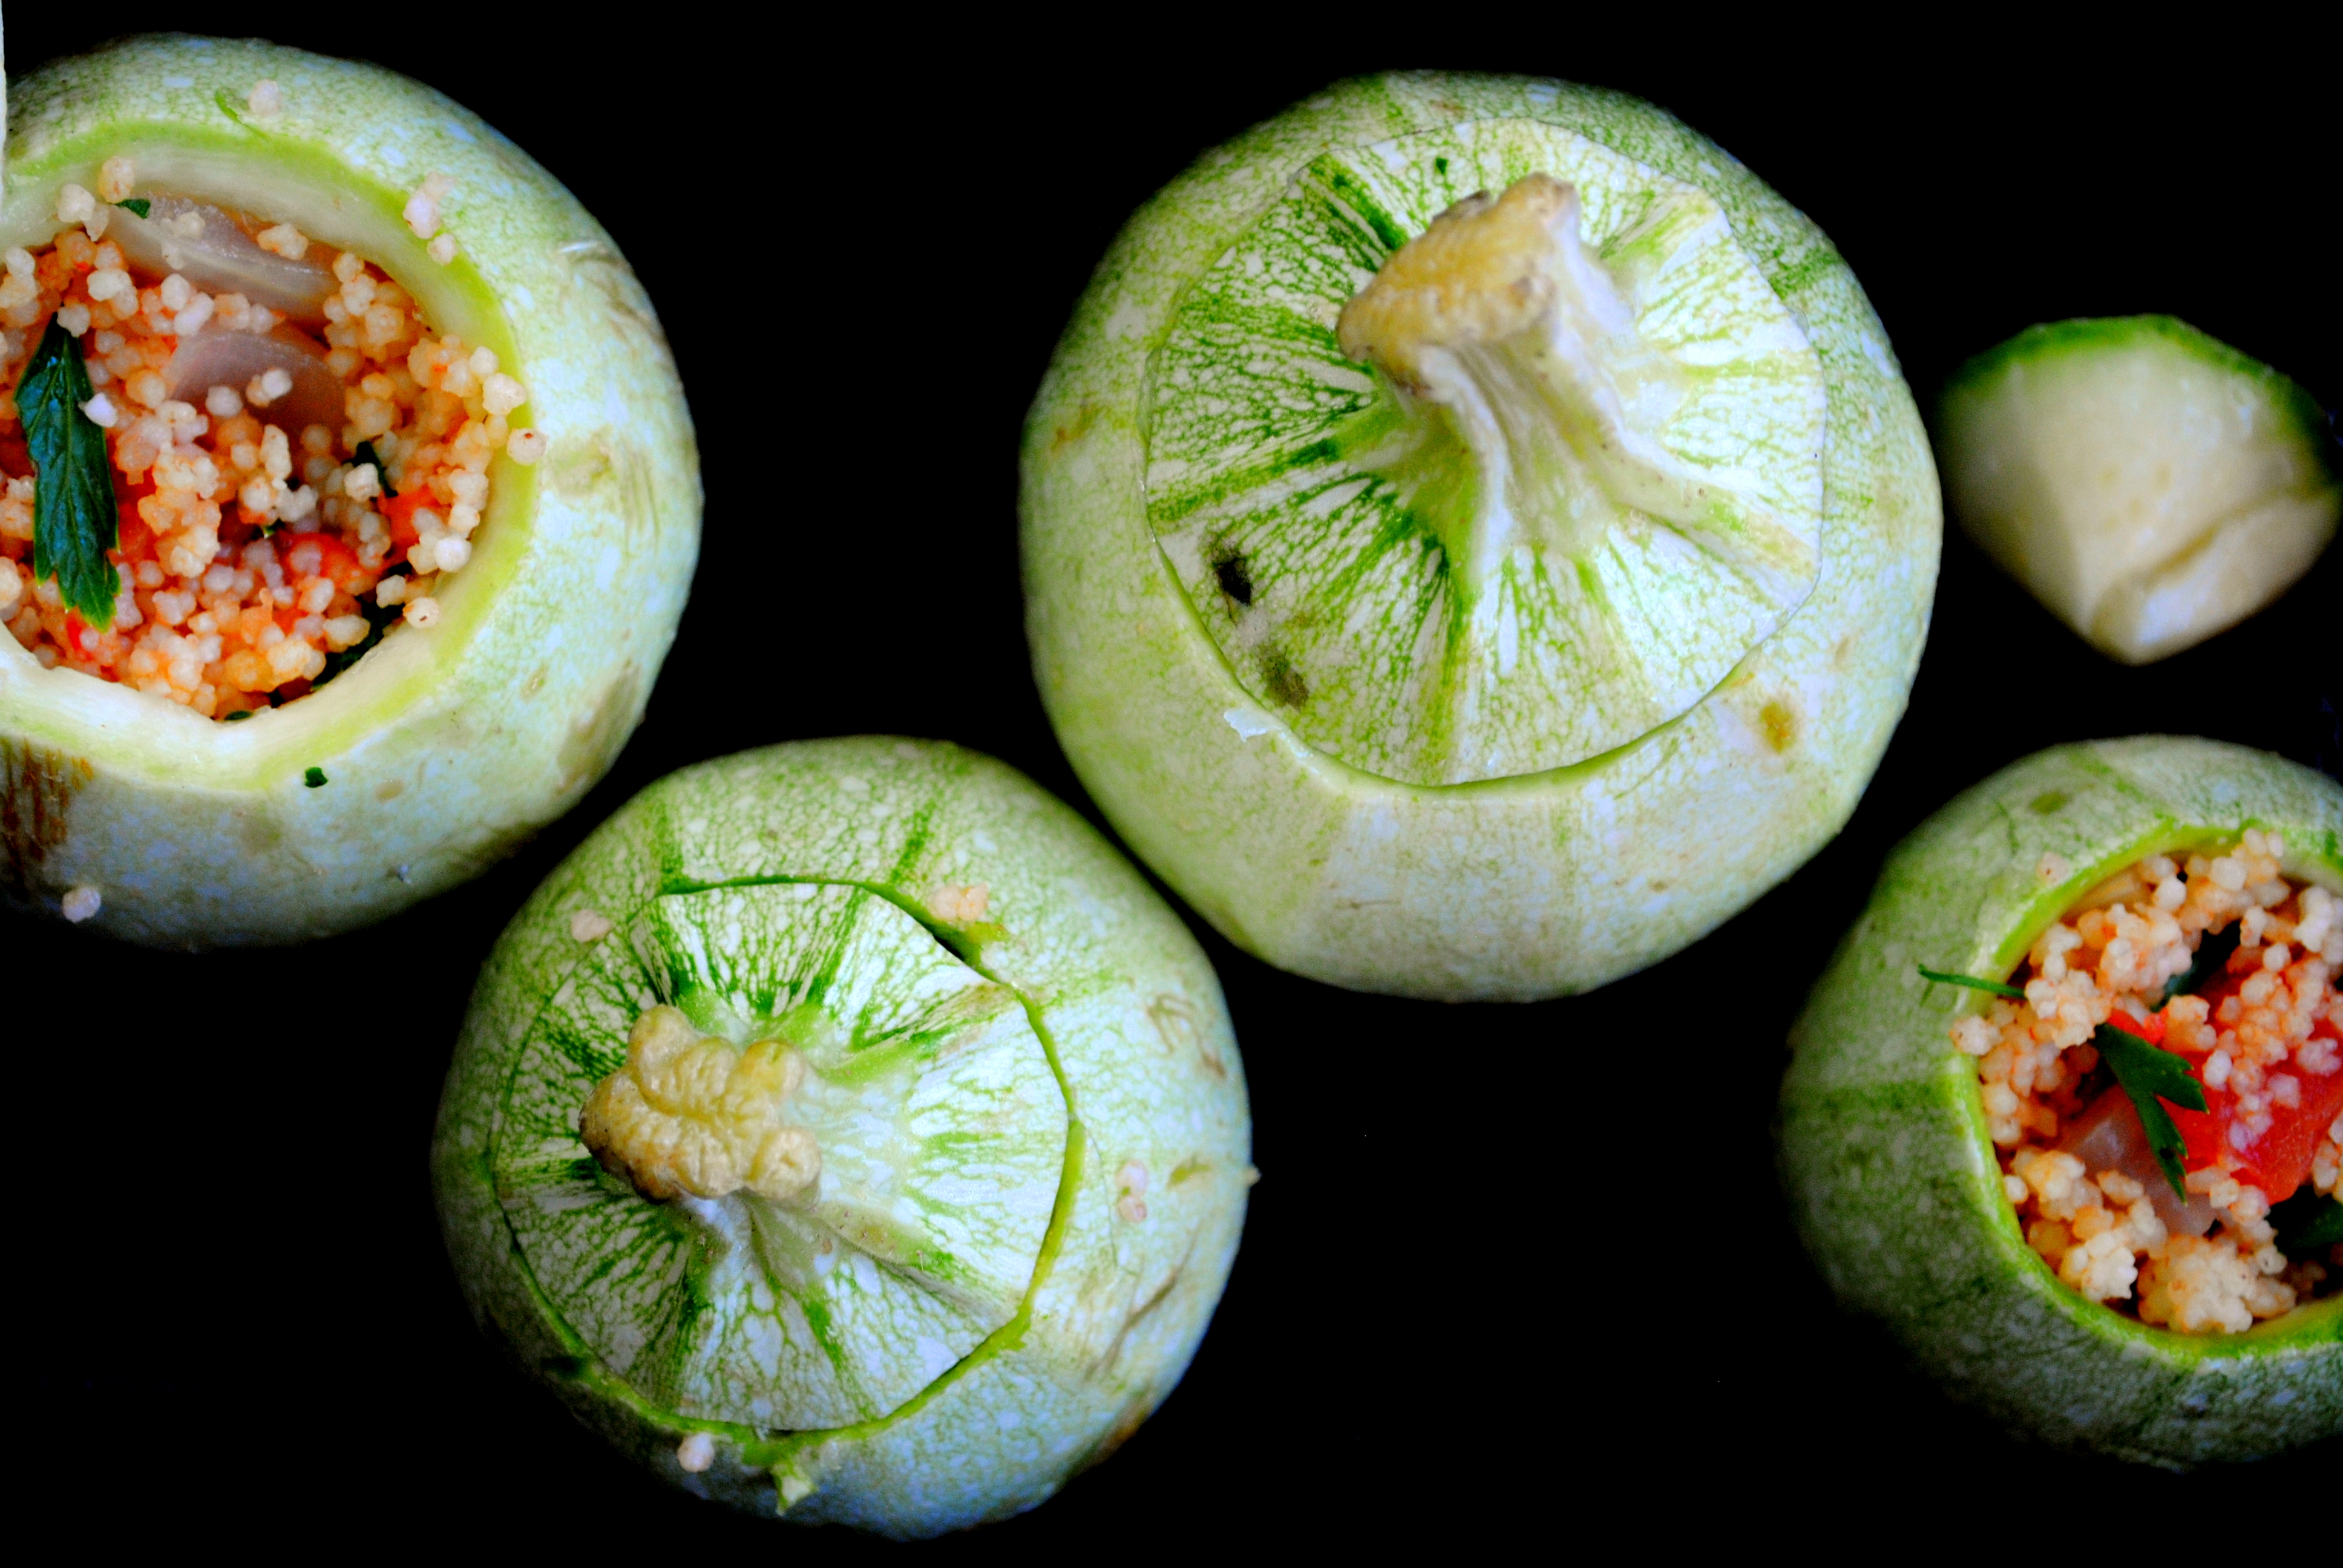 round zucchini stuffed with couscous. Black Bedroom Furniture Sets. Home Design Ideas